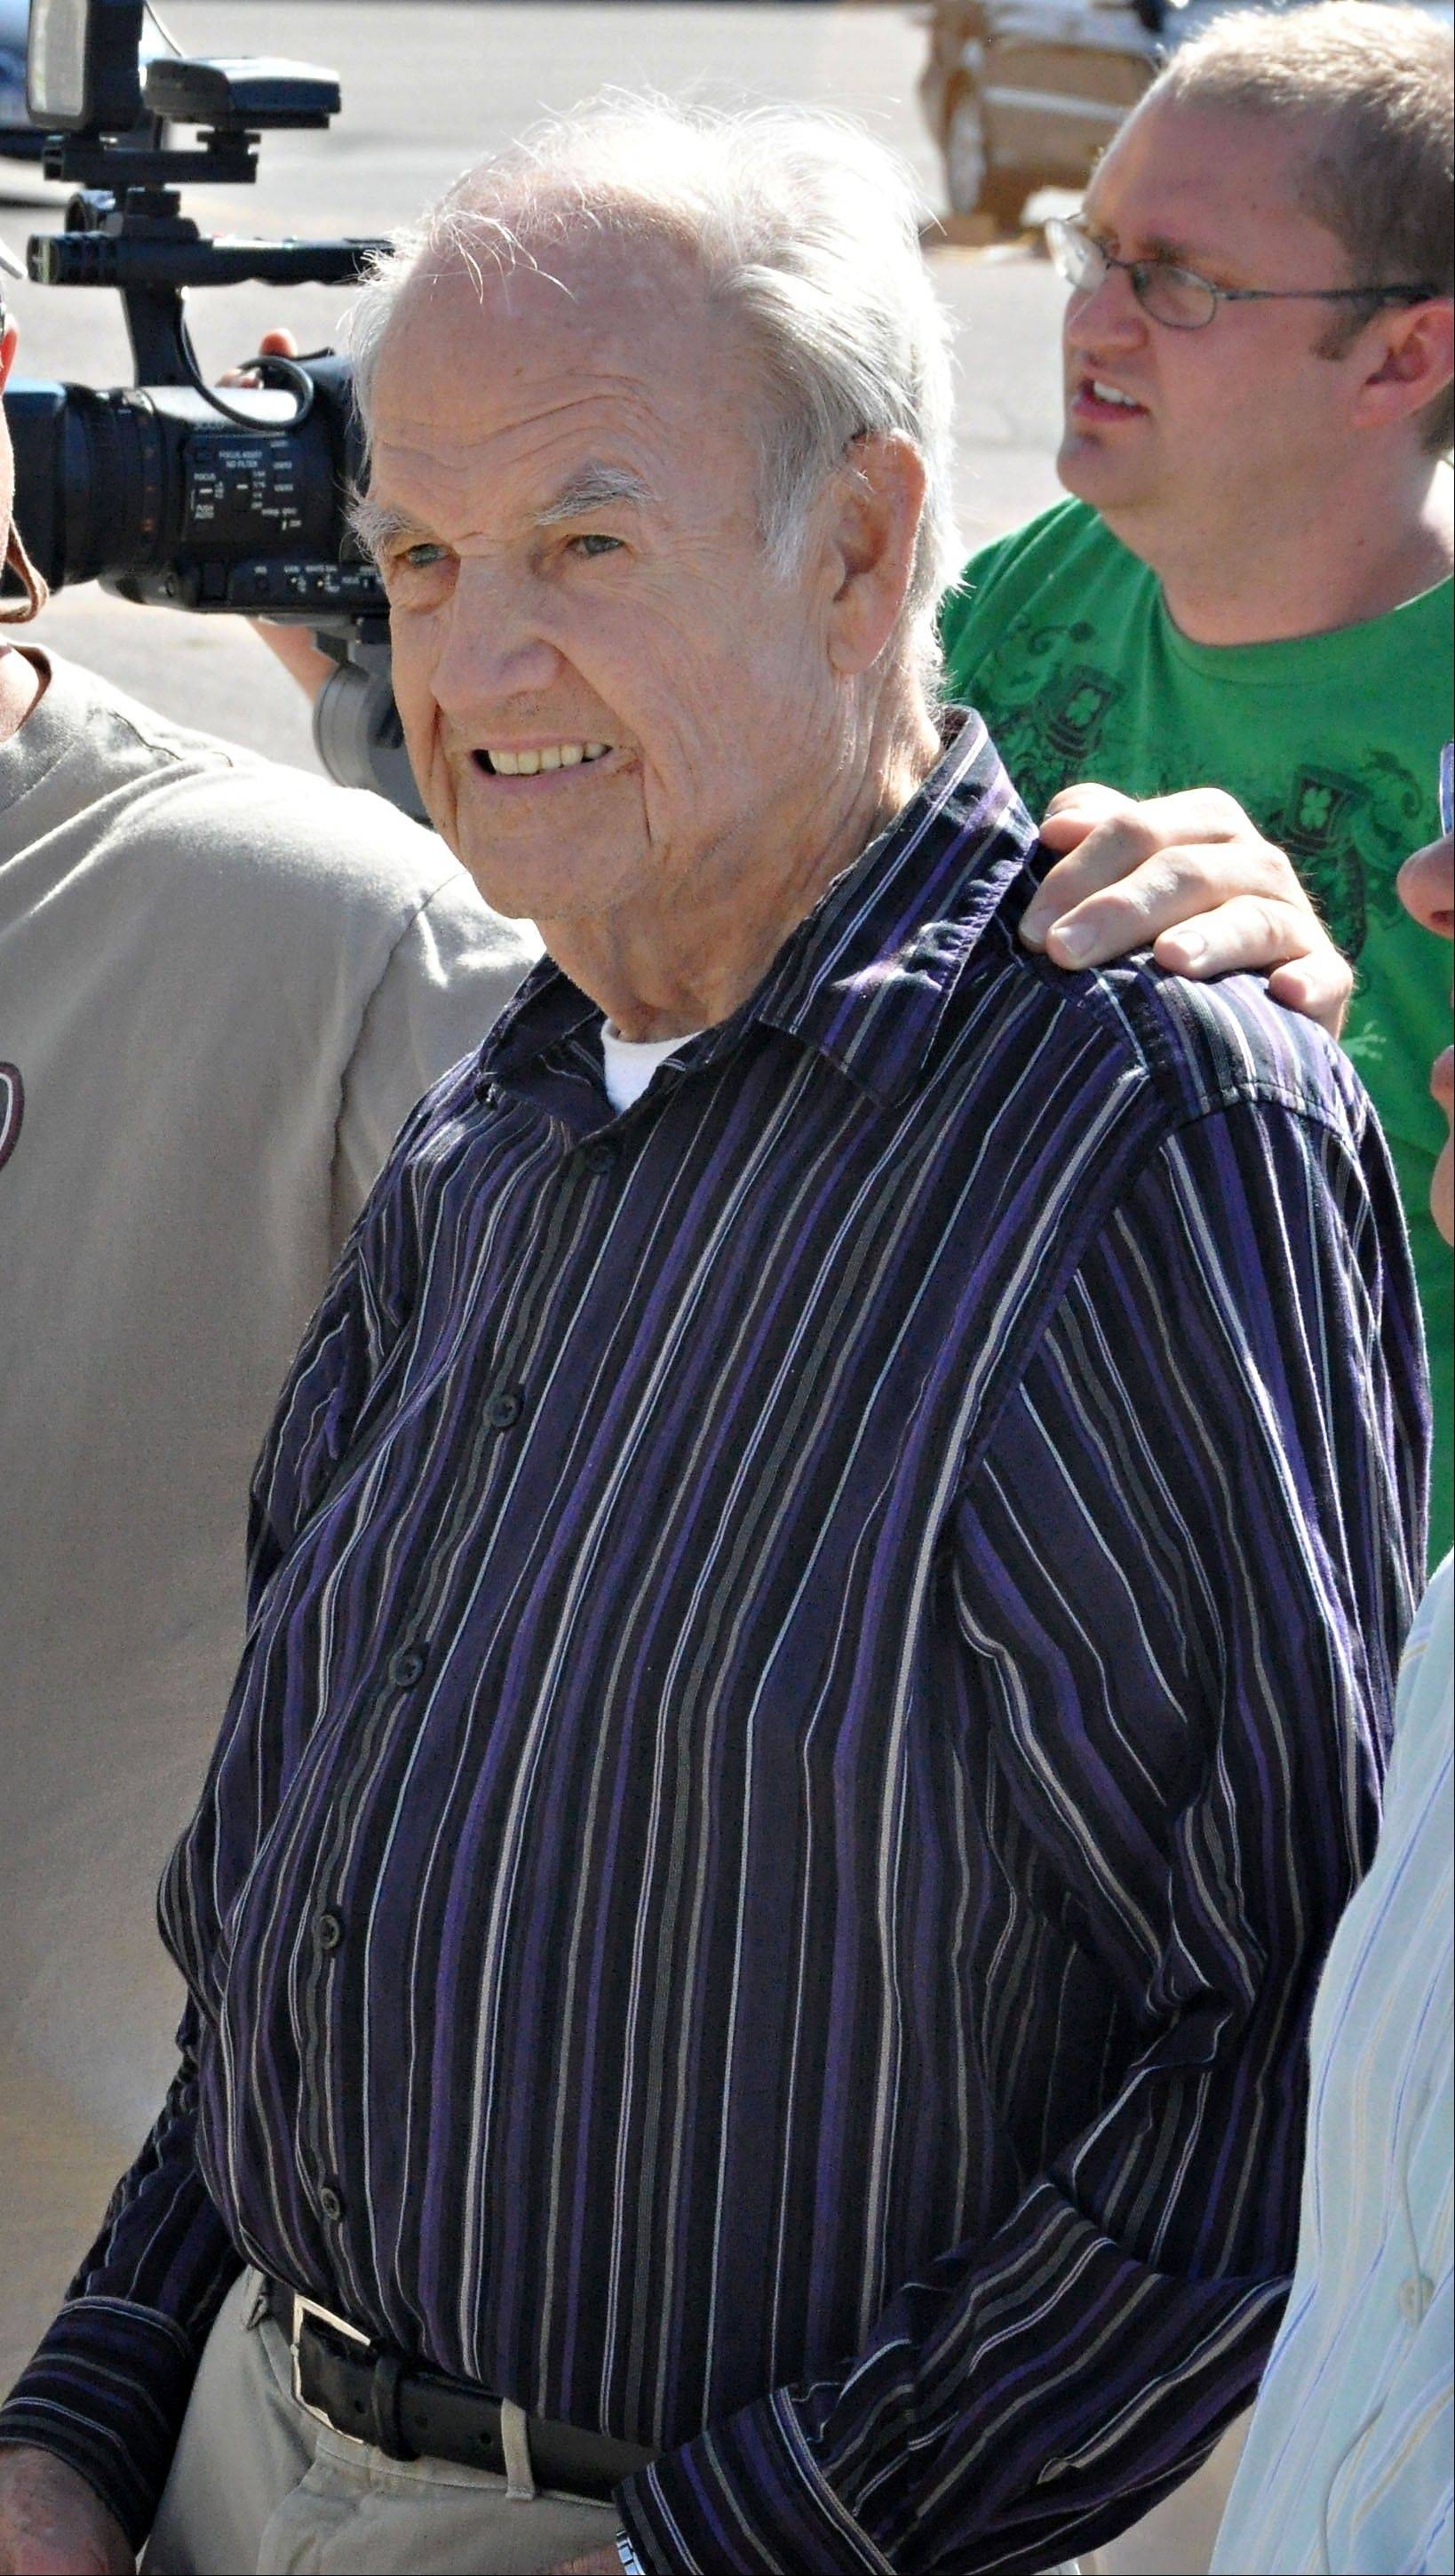 Associated Press File Photo, Sept 2012 Former Sen. George McGovern, 90, in Sioux Falls, S.D. A family spokesman says, McGovern, the Democrat who lost to President Richard Nixon in 1972 in a historic landslide, has died at the age of 90.